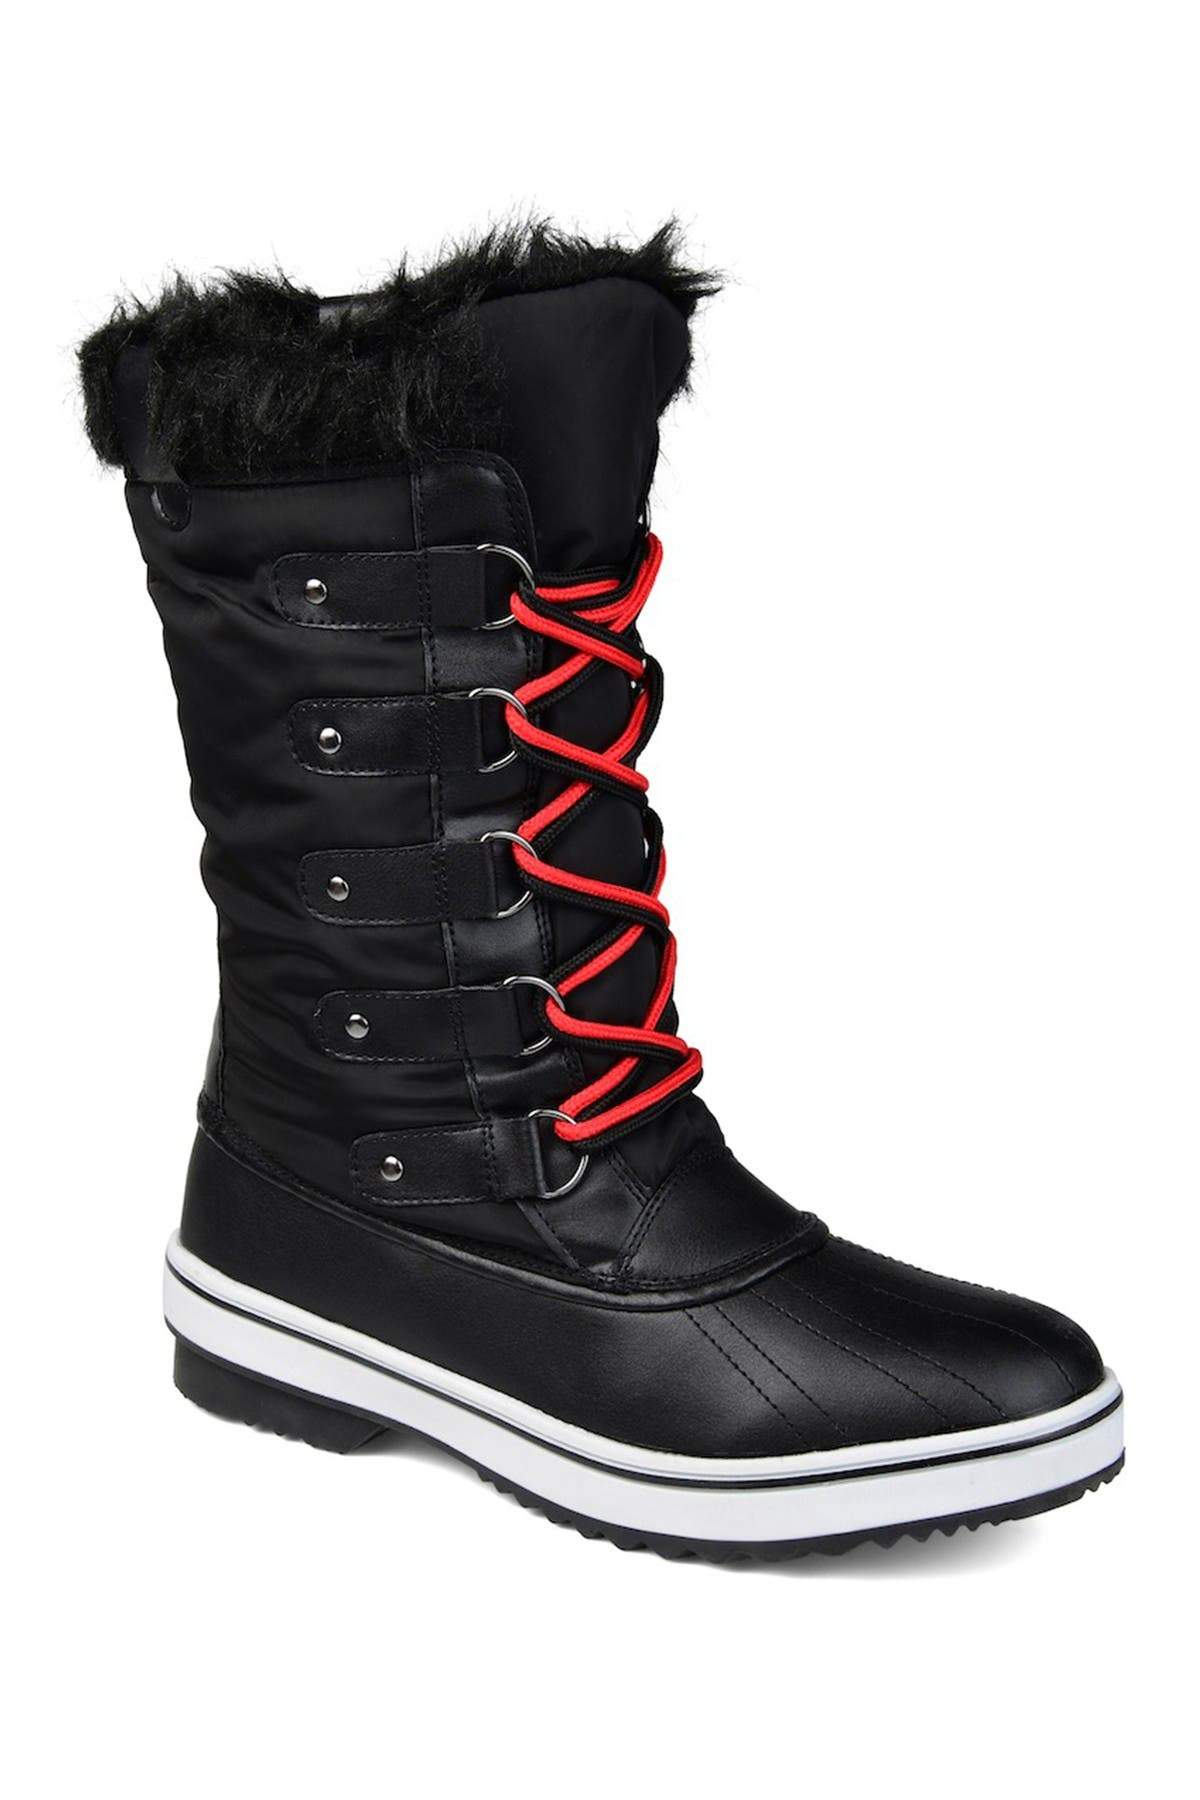 Image of JOURNEE Collection Frost Waterproof Snowboot